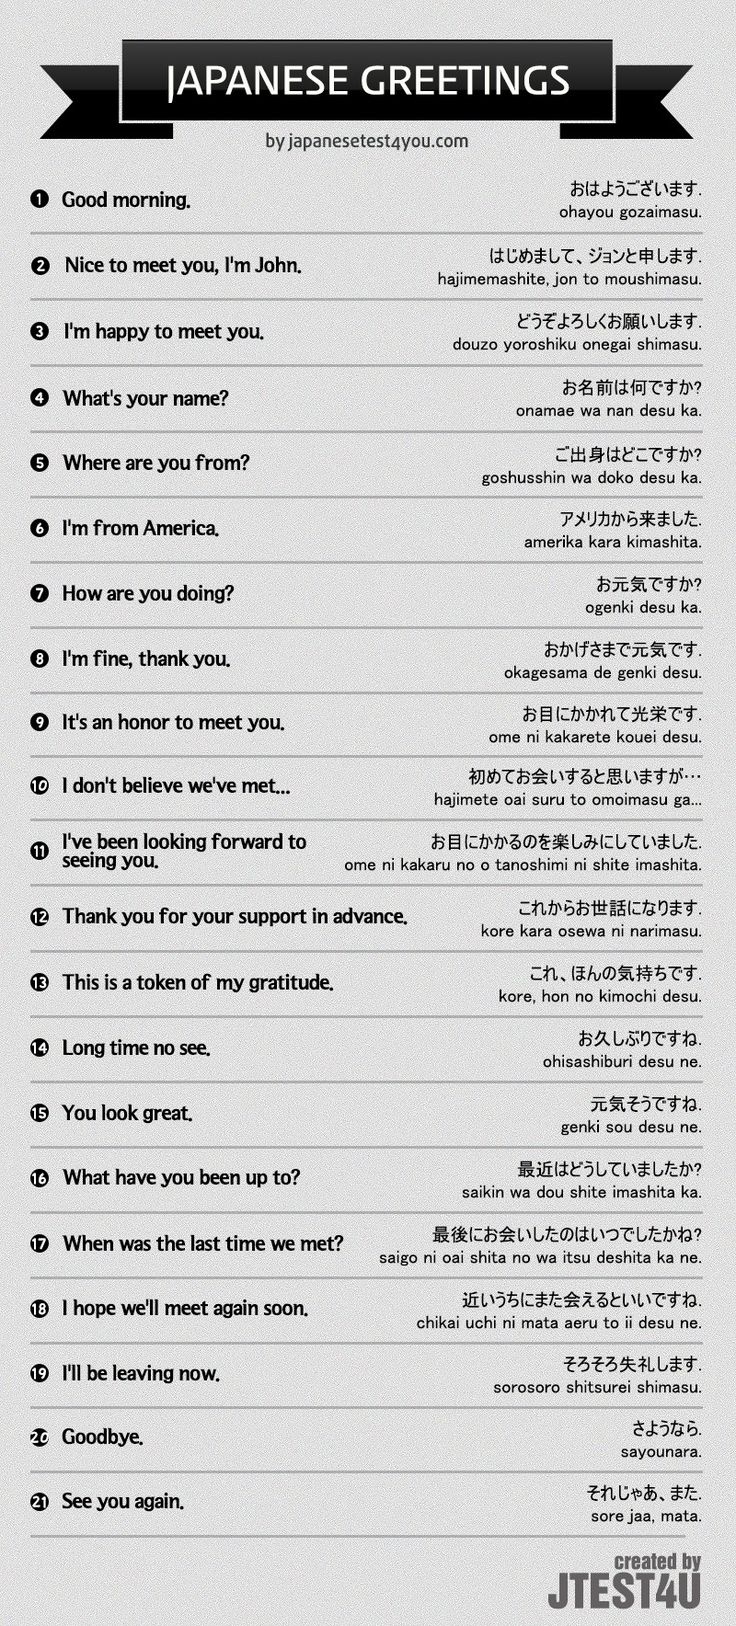 Infographic: how to greet people in Japanese. http://japanesetest4you.com/infographic-how-to-greet-people-in-japanese/